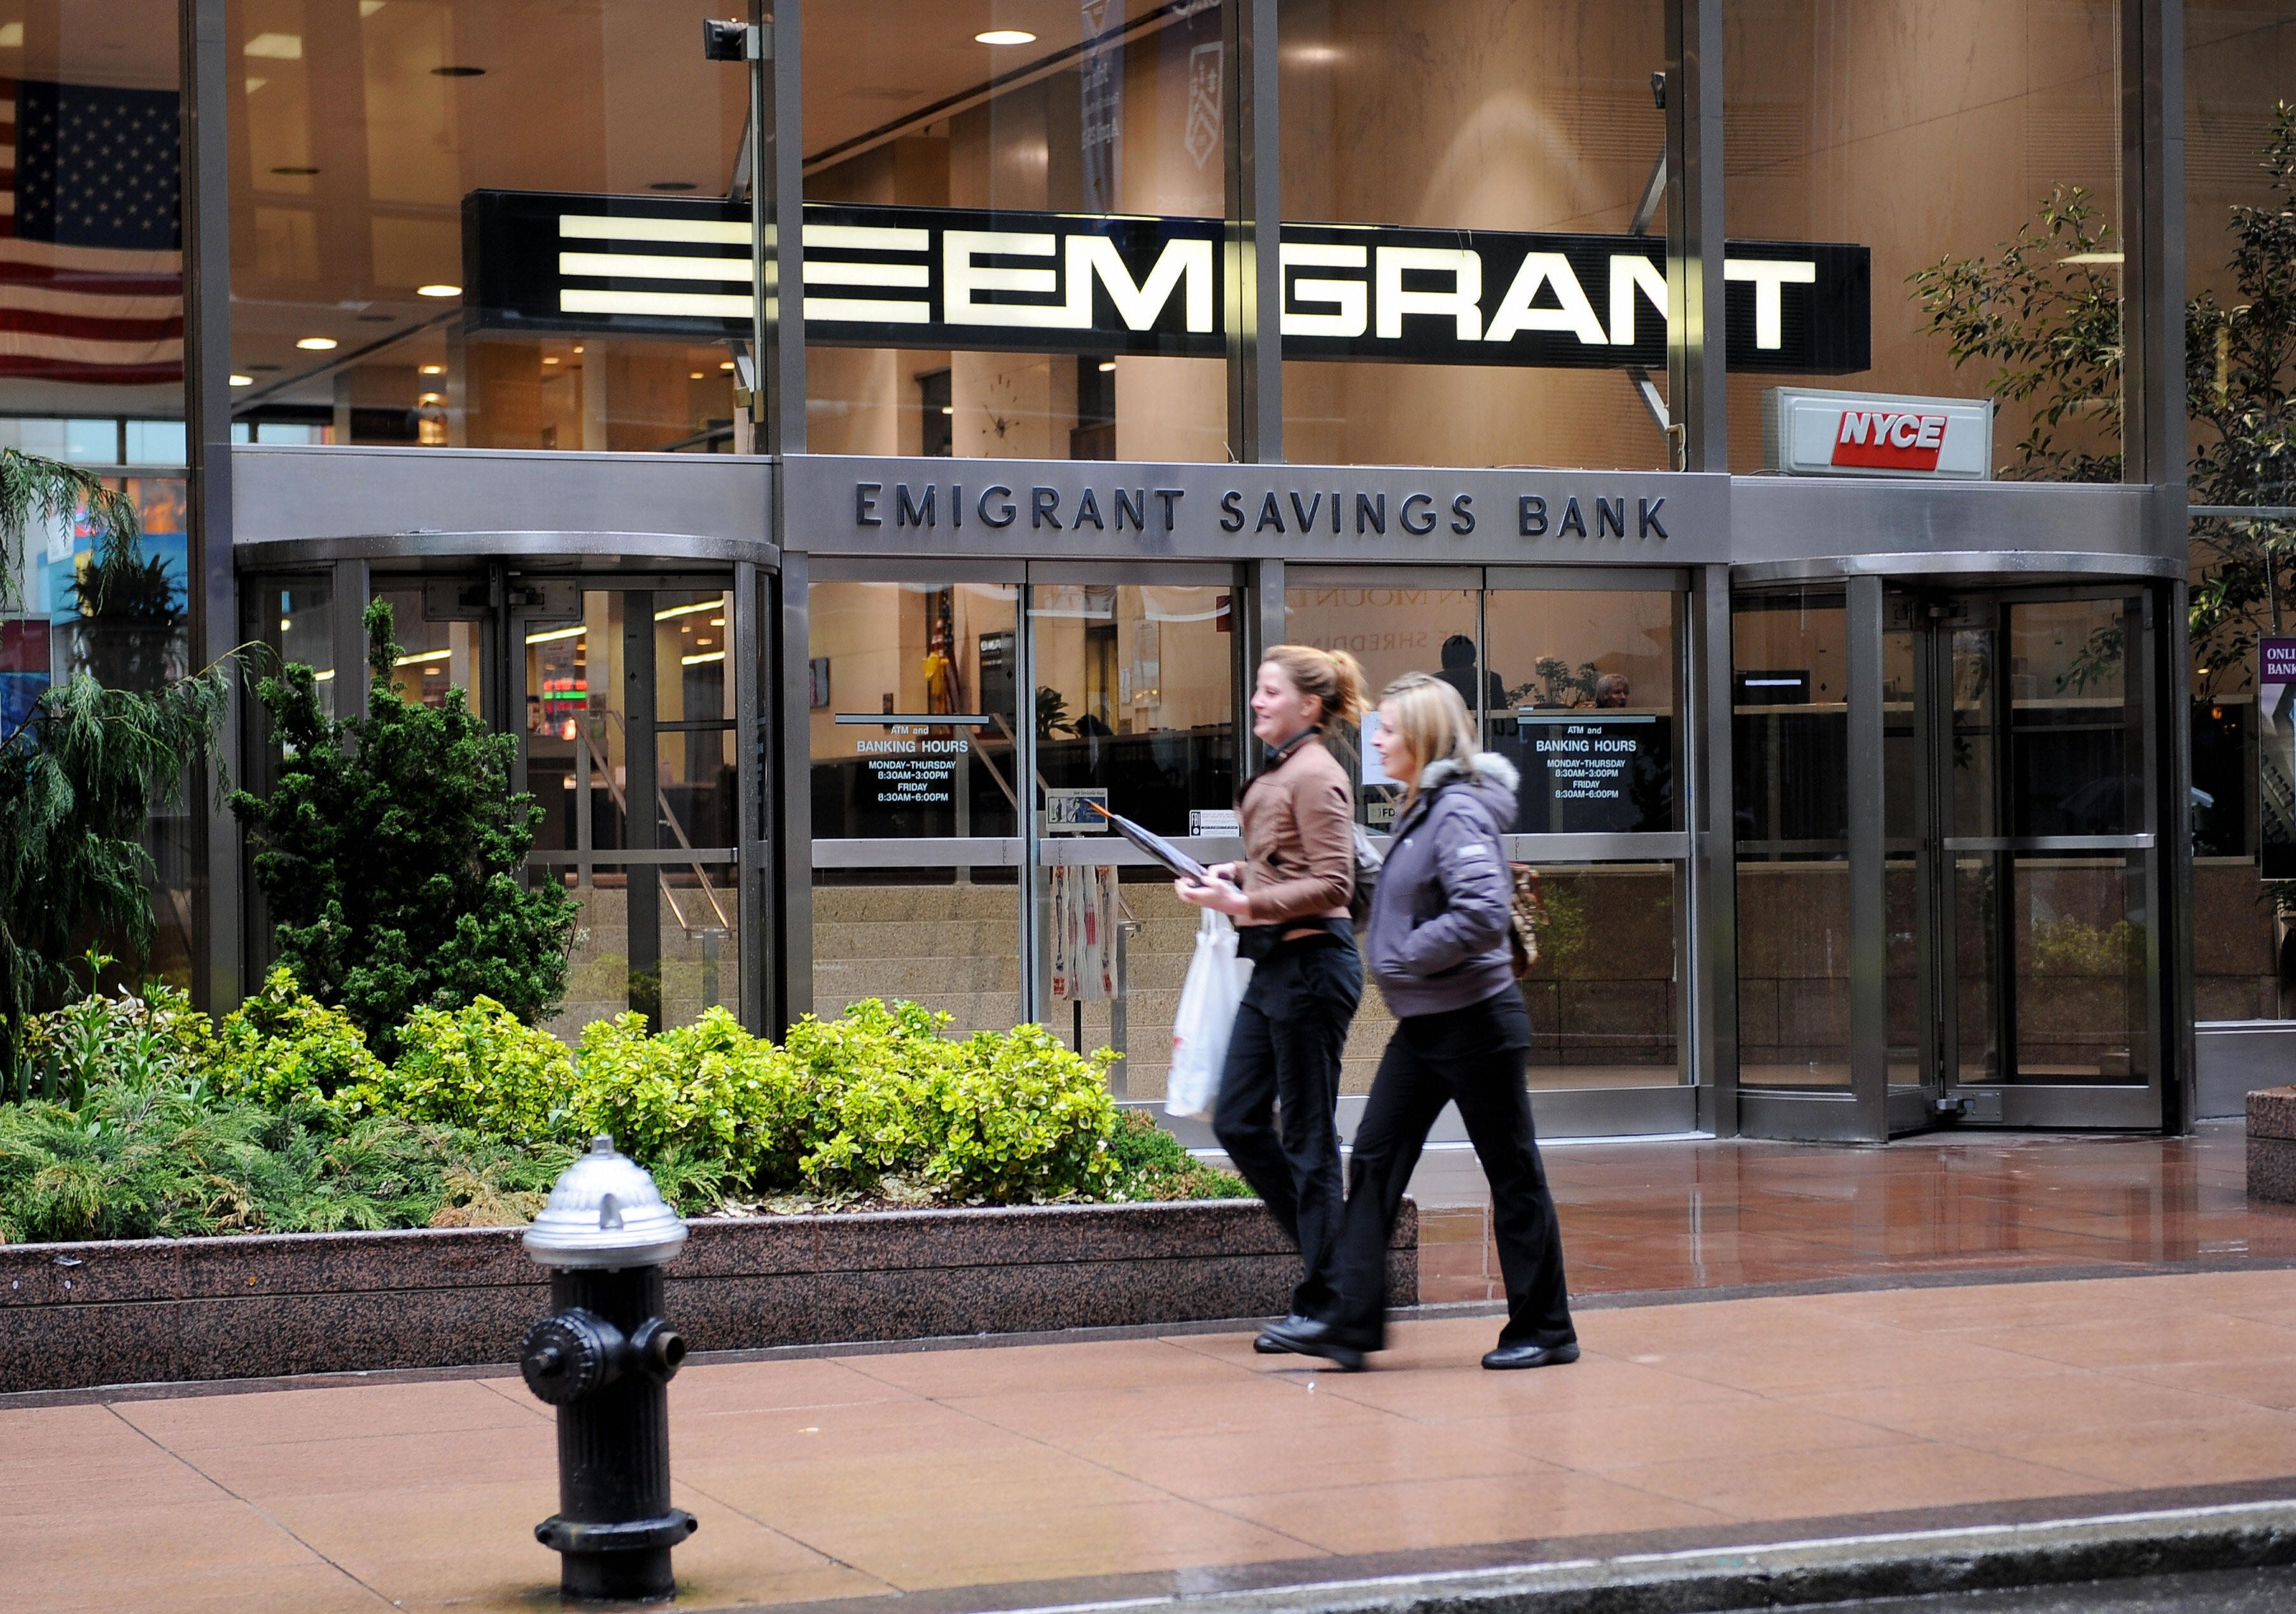 The Emigrant Savings Bank on East 43rd Street April 6, 2009 in New York.